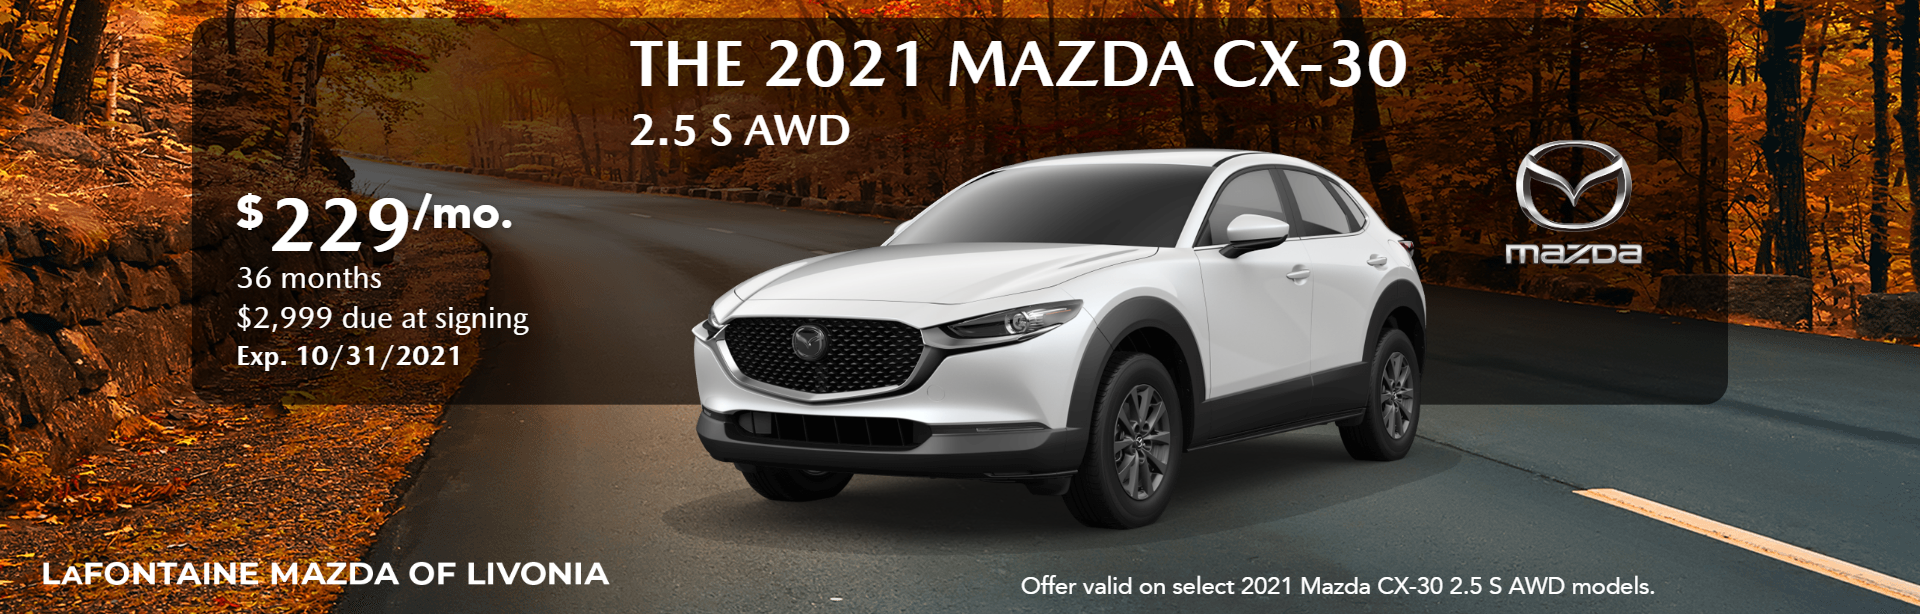 2021_Mazda_CX-30_2.5 S AWD_Website Lease Banner